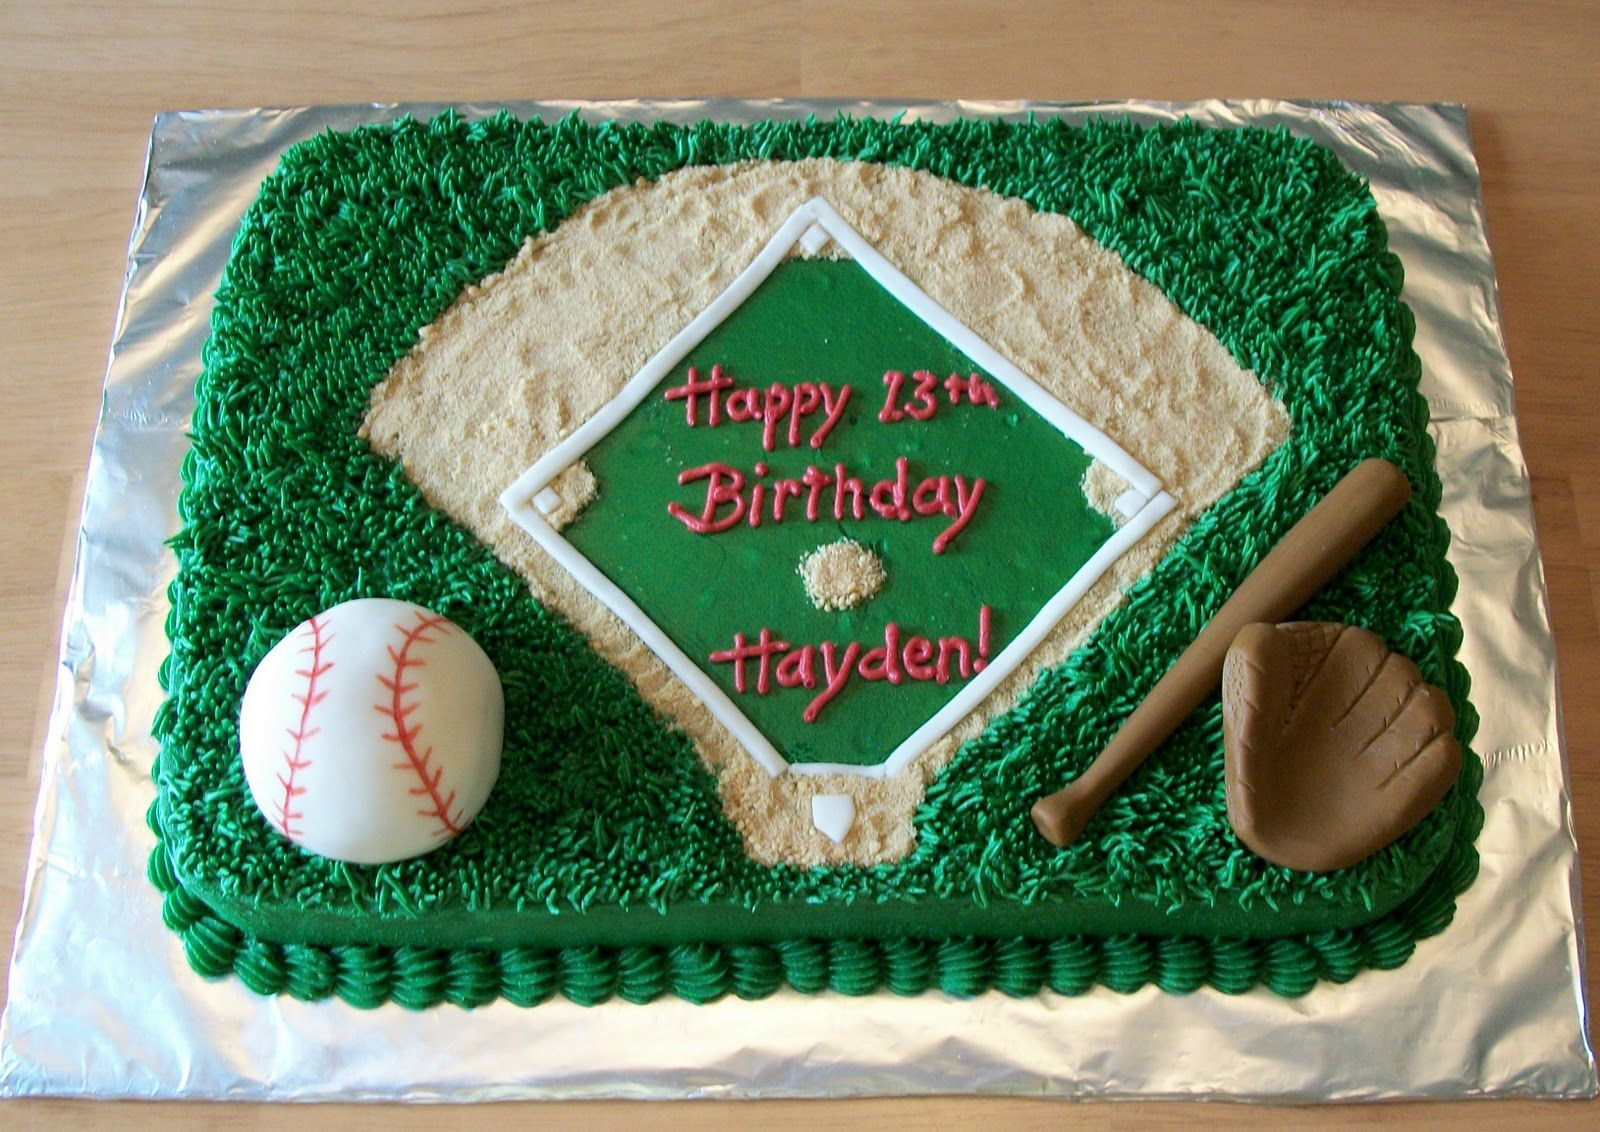 Bellissimo Specialty Cakes Baseball Cake 111 Pin for